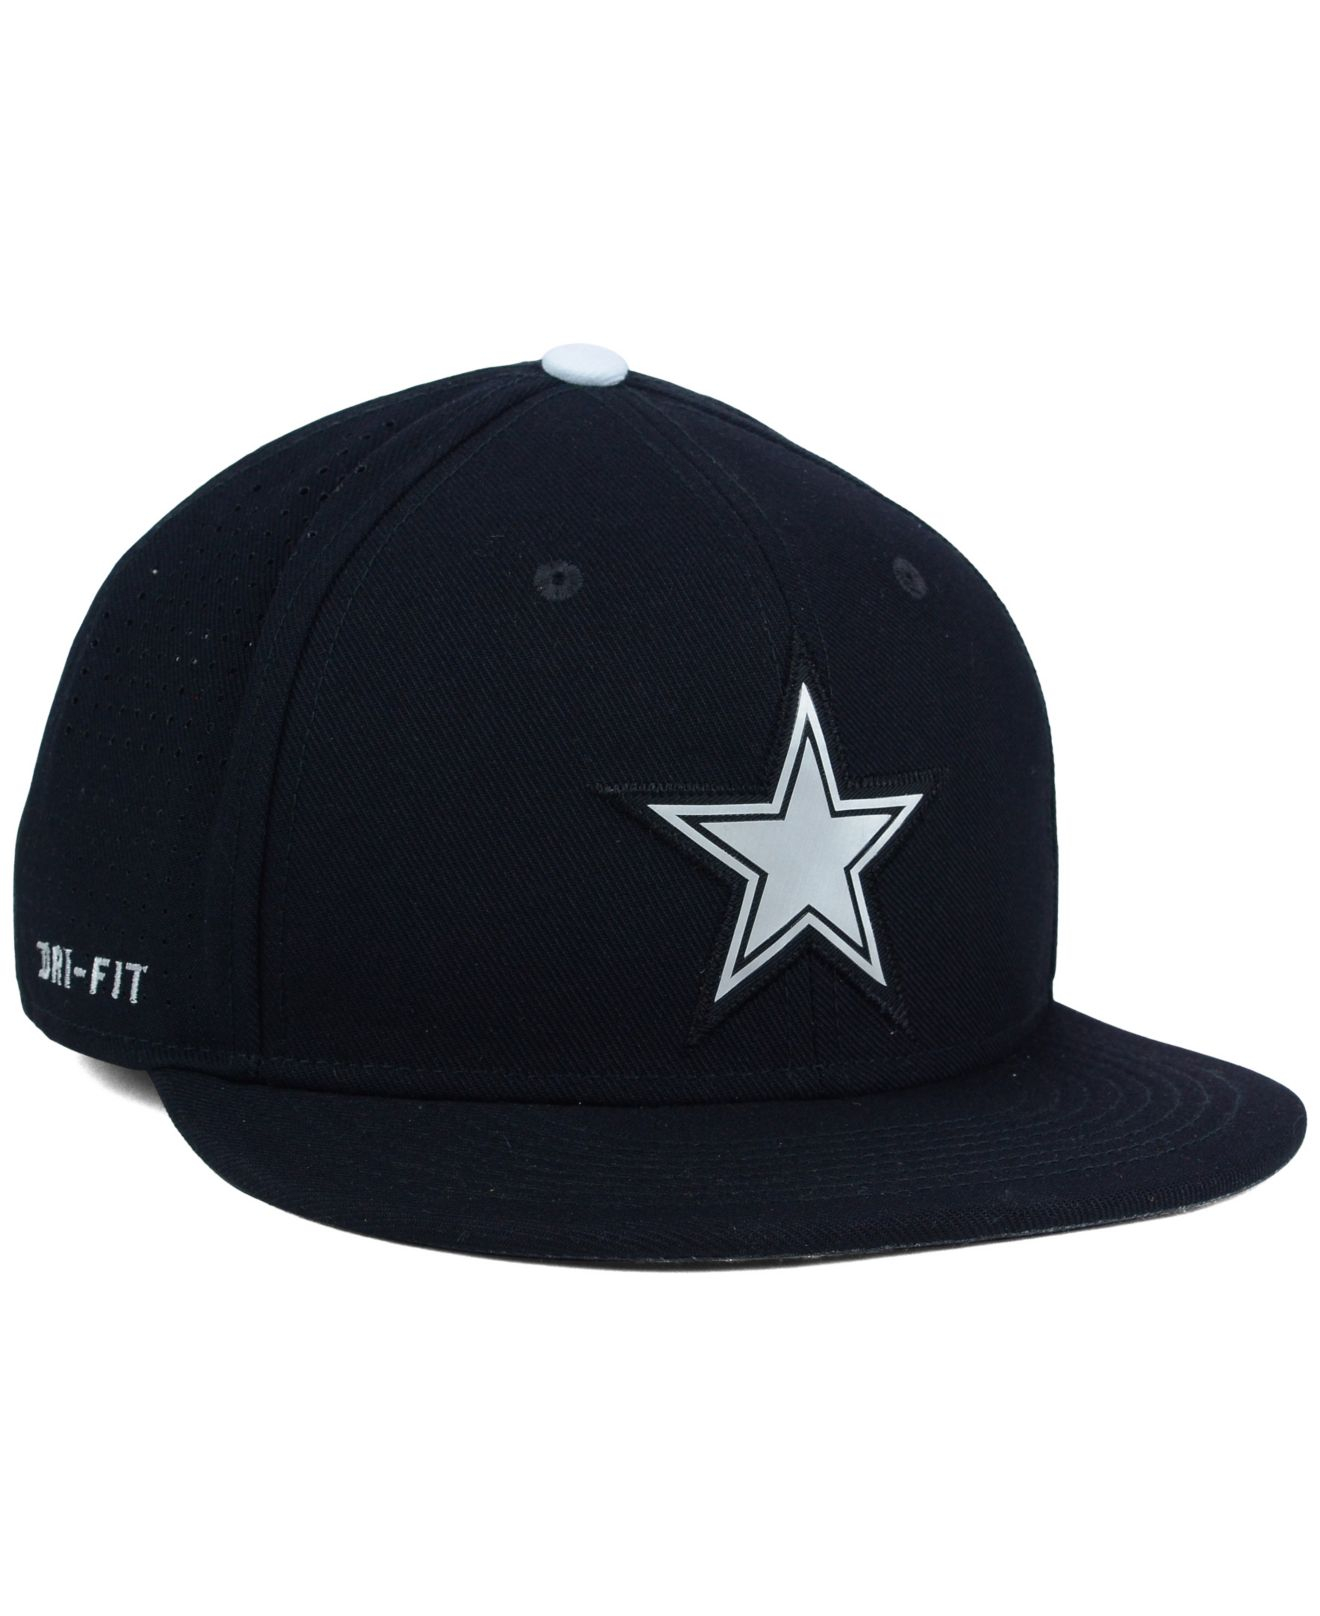 Lyst - Nike Dallas Cowboys True Vapor Fitted Cap in Black for Men f383a0081729